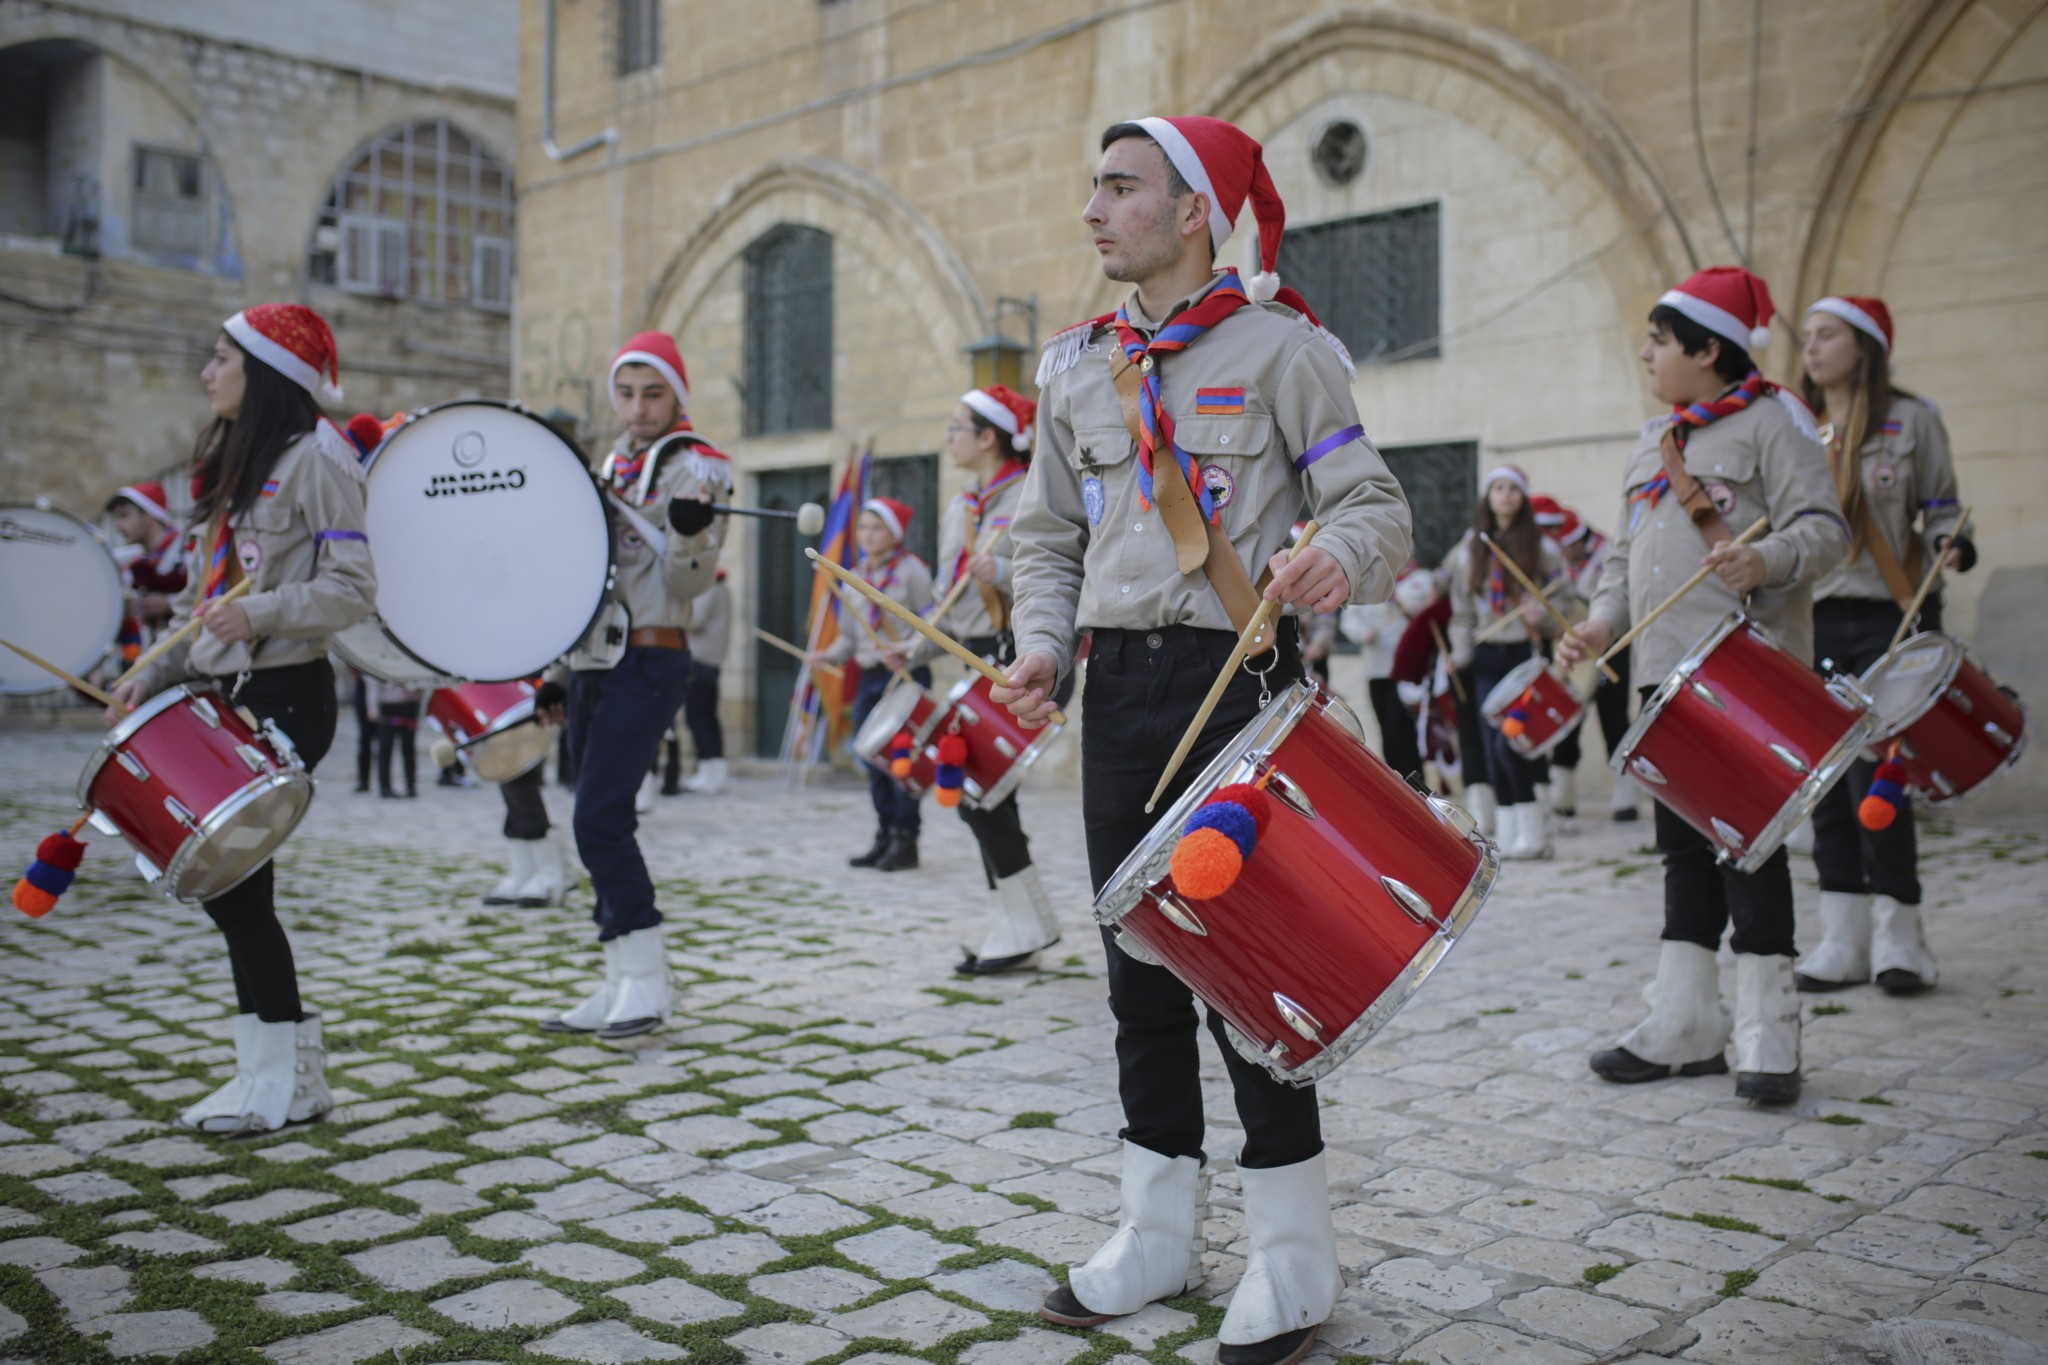 Christians march during an Armenian Christmas procession through the Old City of Jerusalem. Photo by Maxim DinshteinFLASH90